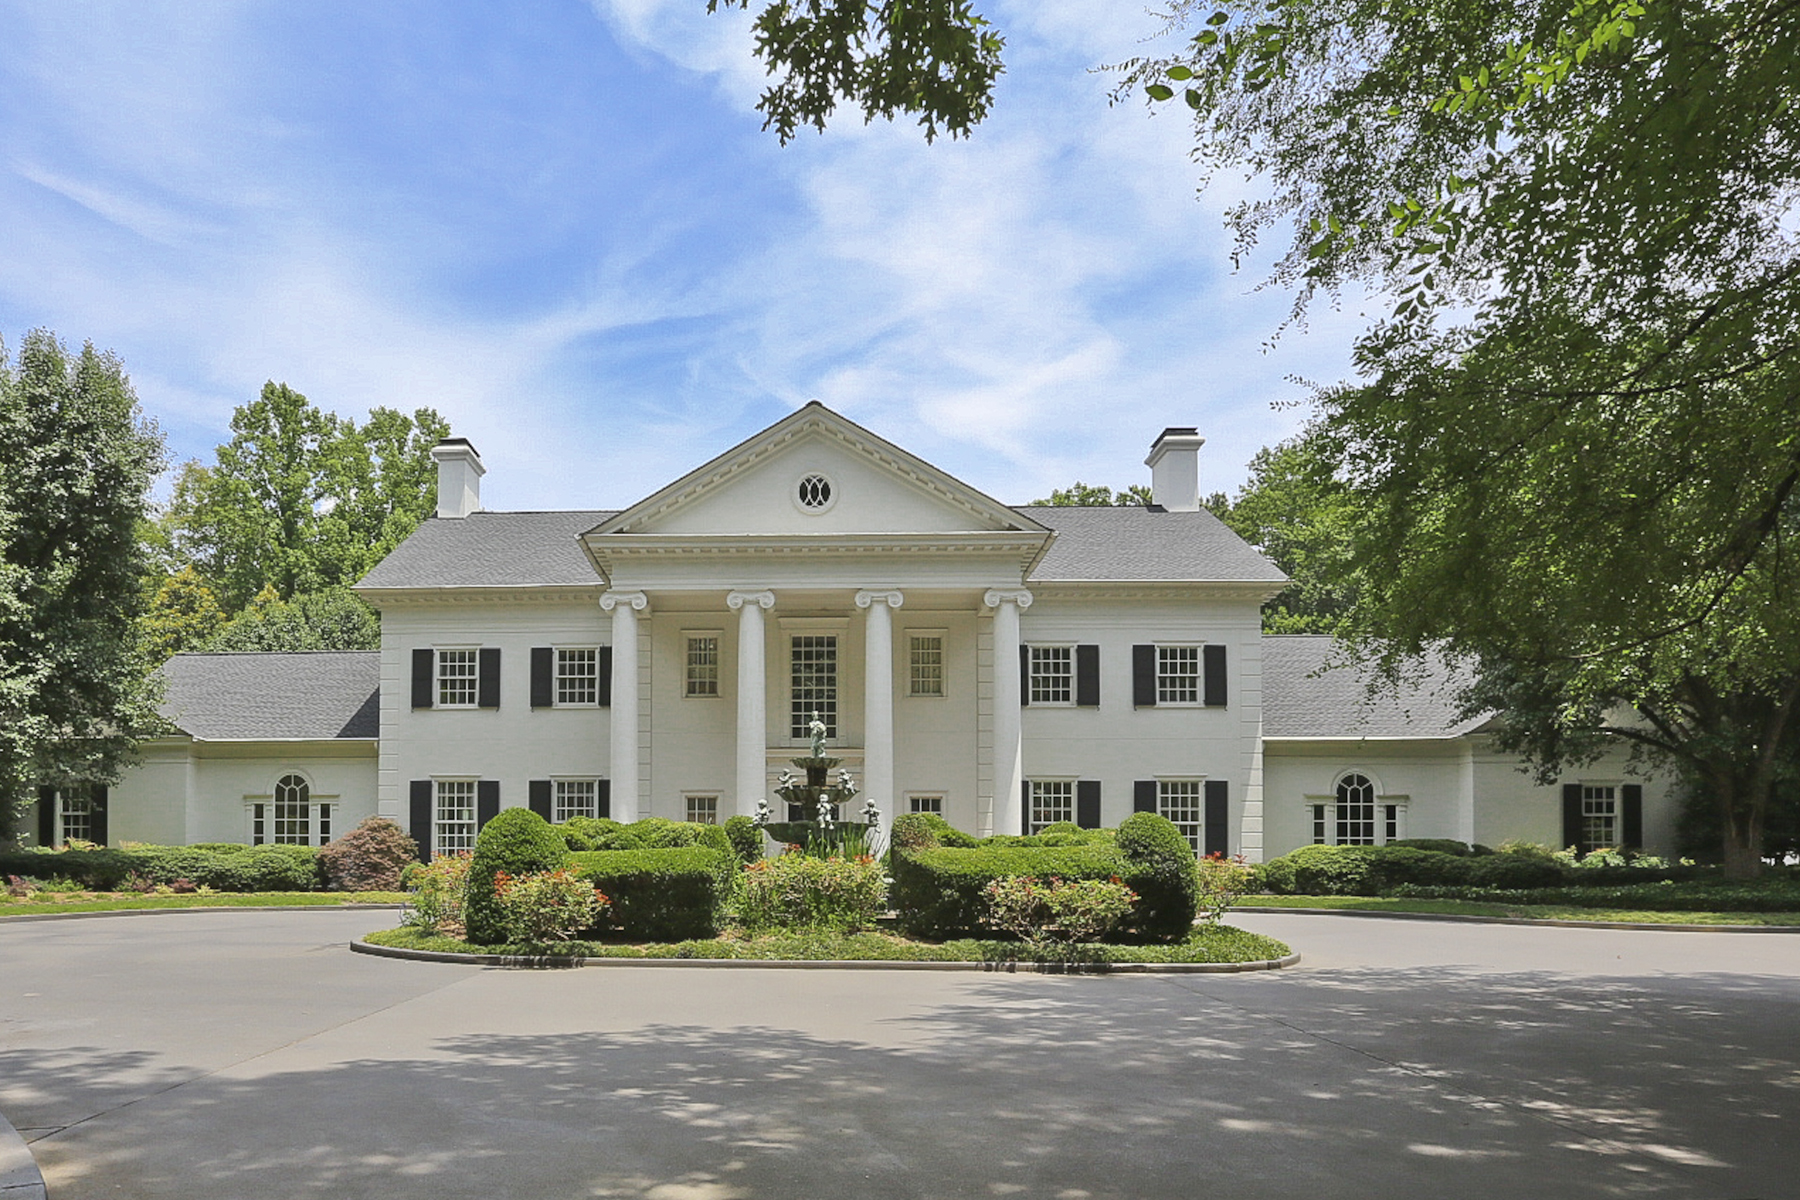 단독 가정 주택 용 매매 에 With Stately Elegance This 2+ Acres Estate And Gardens Are Majestic And Proud! 4371 Northside Drive NW Buckhead, Atlanta, 조지아 30327 미국